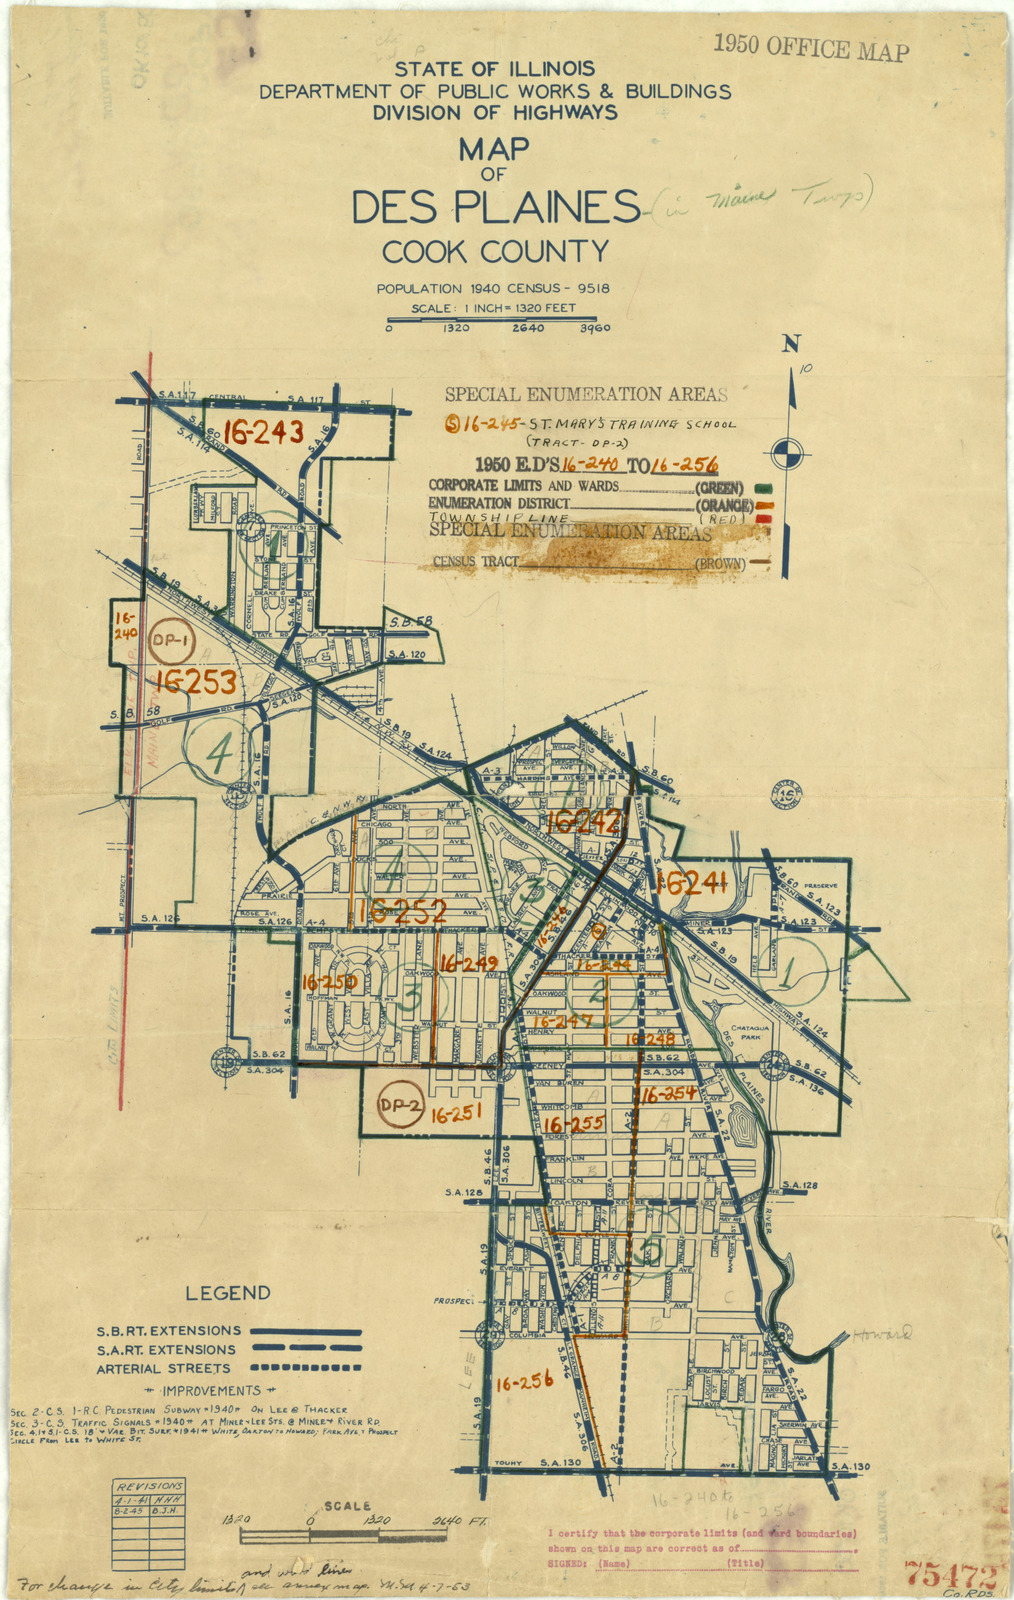 1950 Census Enumeration District Maps - Illinois (IL) - Cook ... on west chicago il zoning map, lagrange park map, glendale hts map, river grove map, kewanee map, duquoin map, amboy map, mt prospect map, jefferson park map, skokie river map, naperville north high school map, chicago hts map, homewood map, worth map, east loop map, belvidere map, deerfield map, university of illinois at chicago map, cicero illinois map, schererville map,